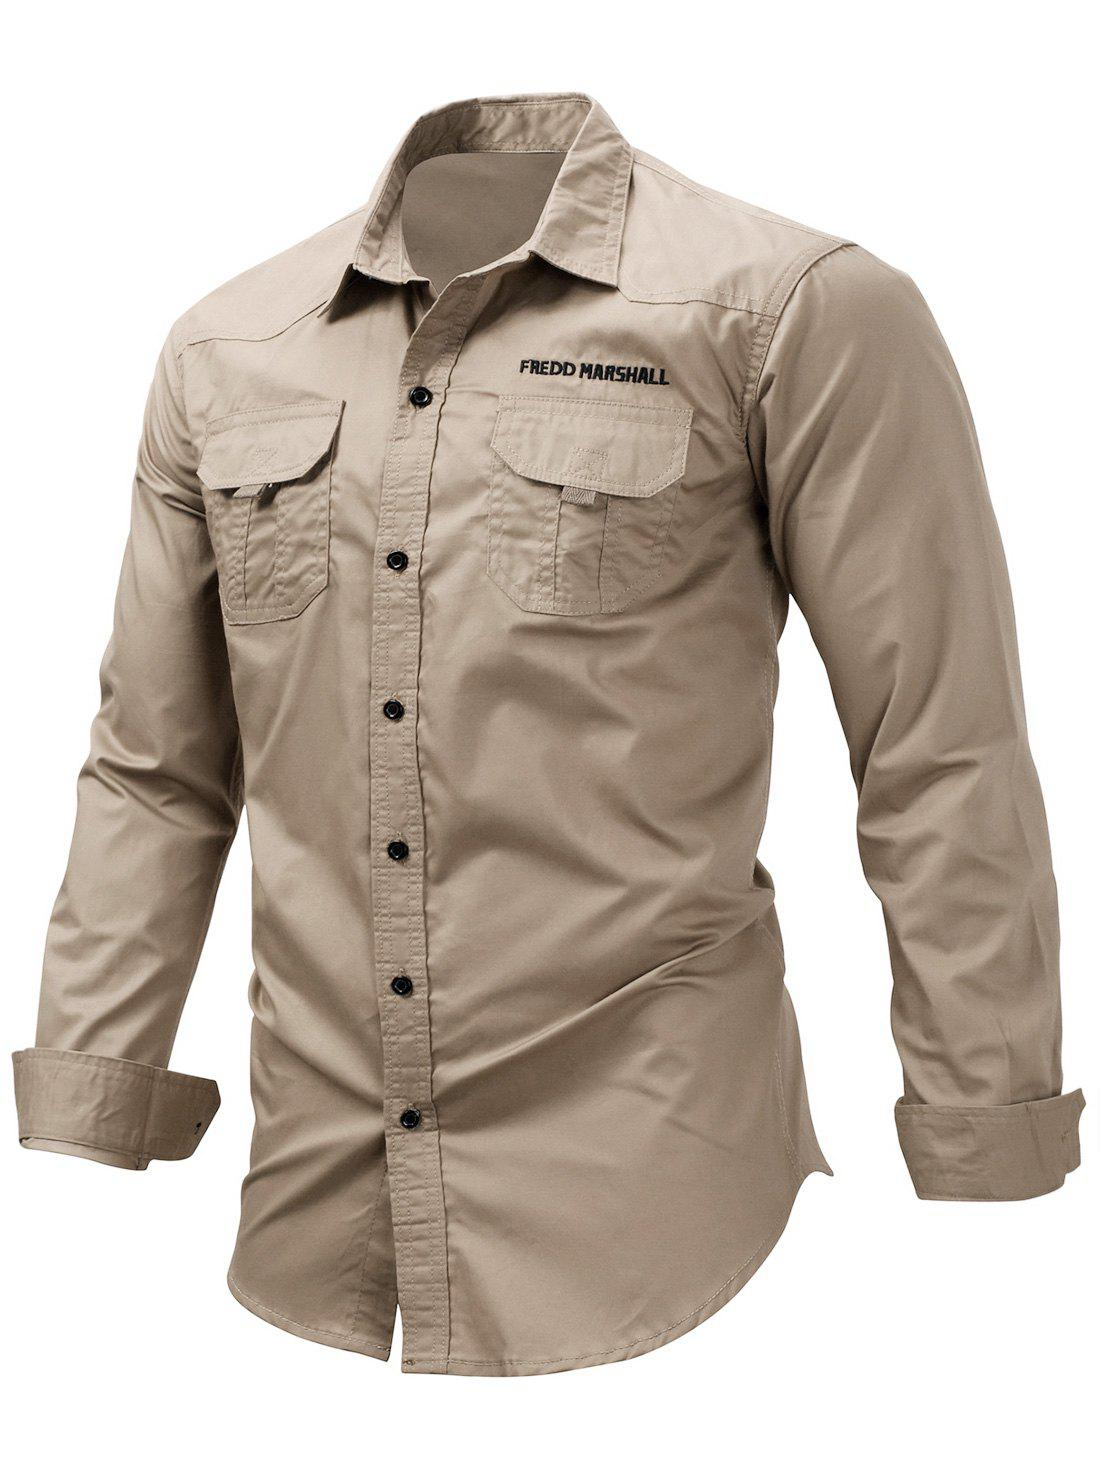 Letter Embroidered Button Up Double Pocket Cargo Shirt - DARK KHAKI M